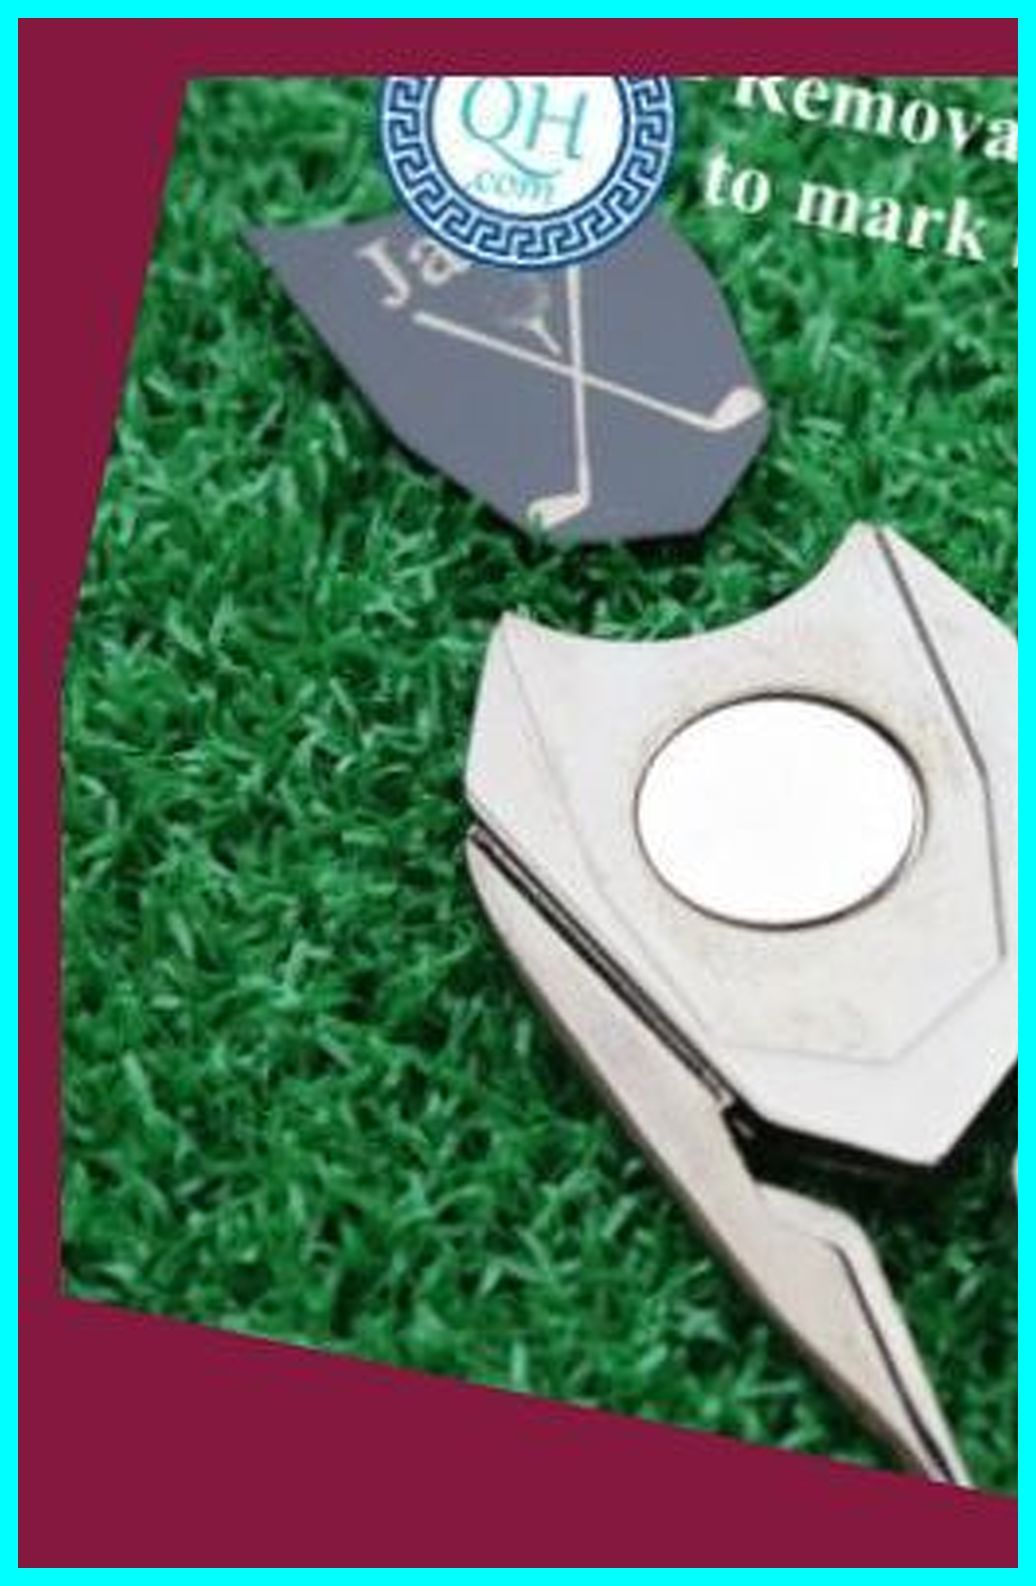 Two Personalized Golf Ball Marker And Divot Tools His And Hers Golf Best Man Groomsmen Boyfri Persona In 2020 Personalized Golf Ball Marker Golf Ball Ball Markers